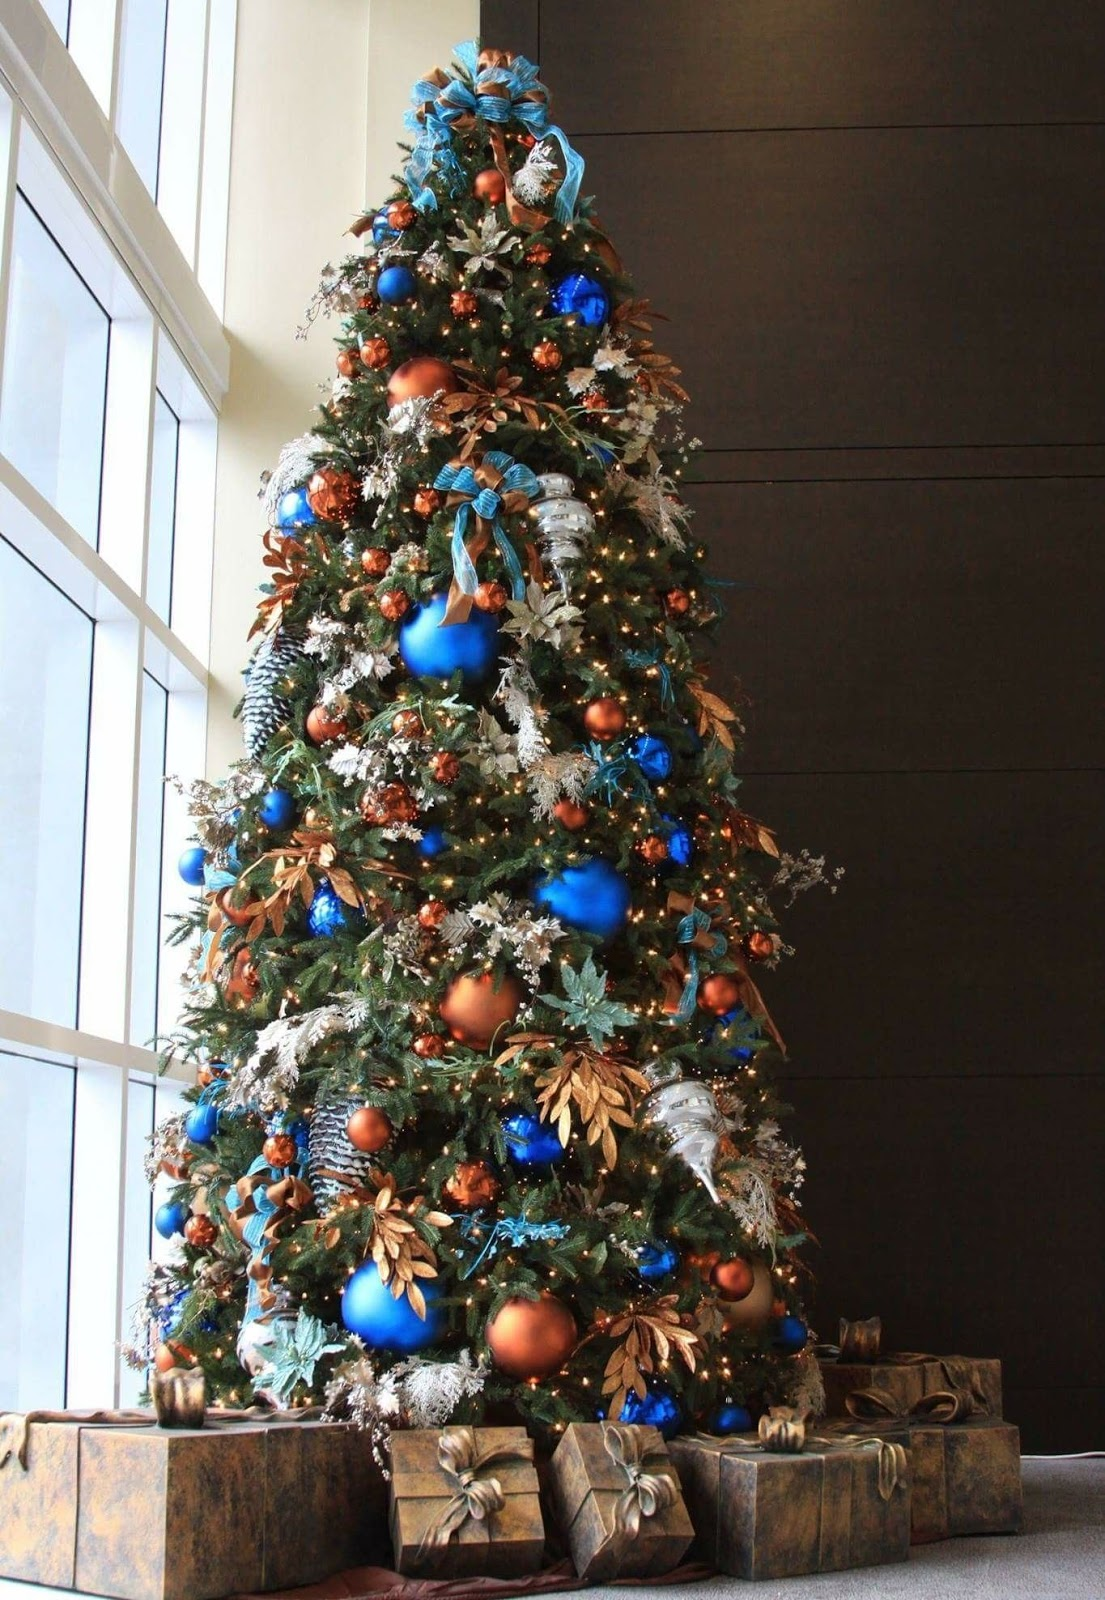 Blue Christmas Tree Ideas to give your holiday adorned home a tranquil vibe wrapped